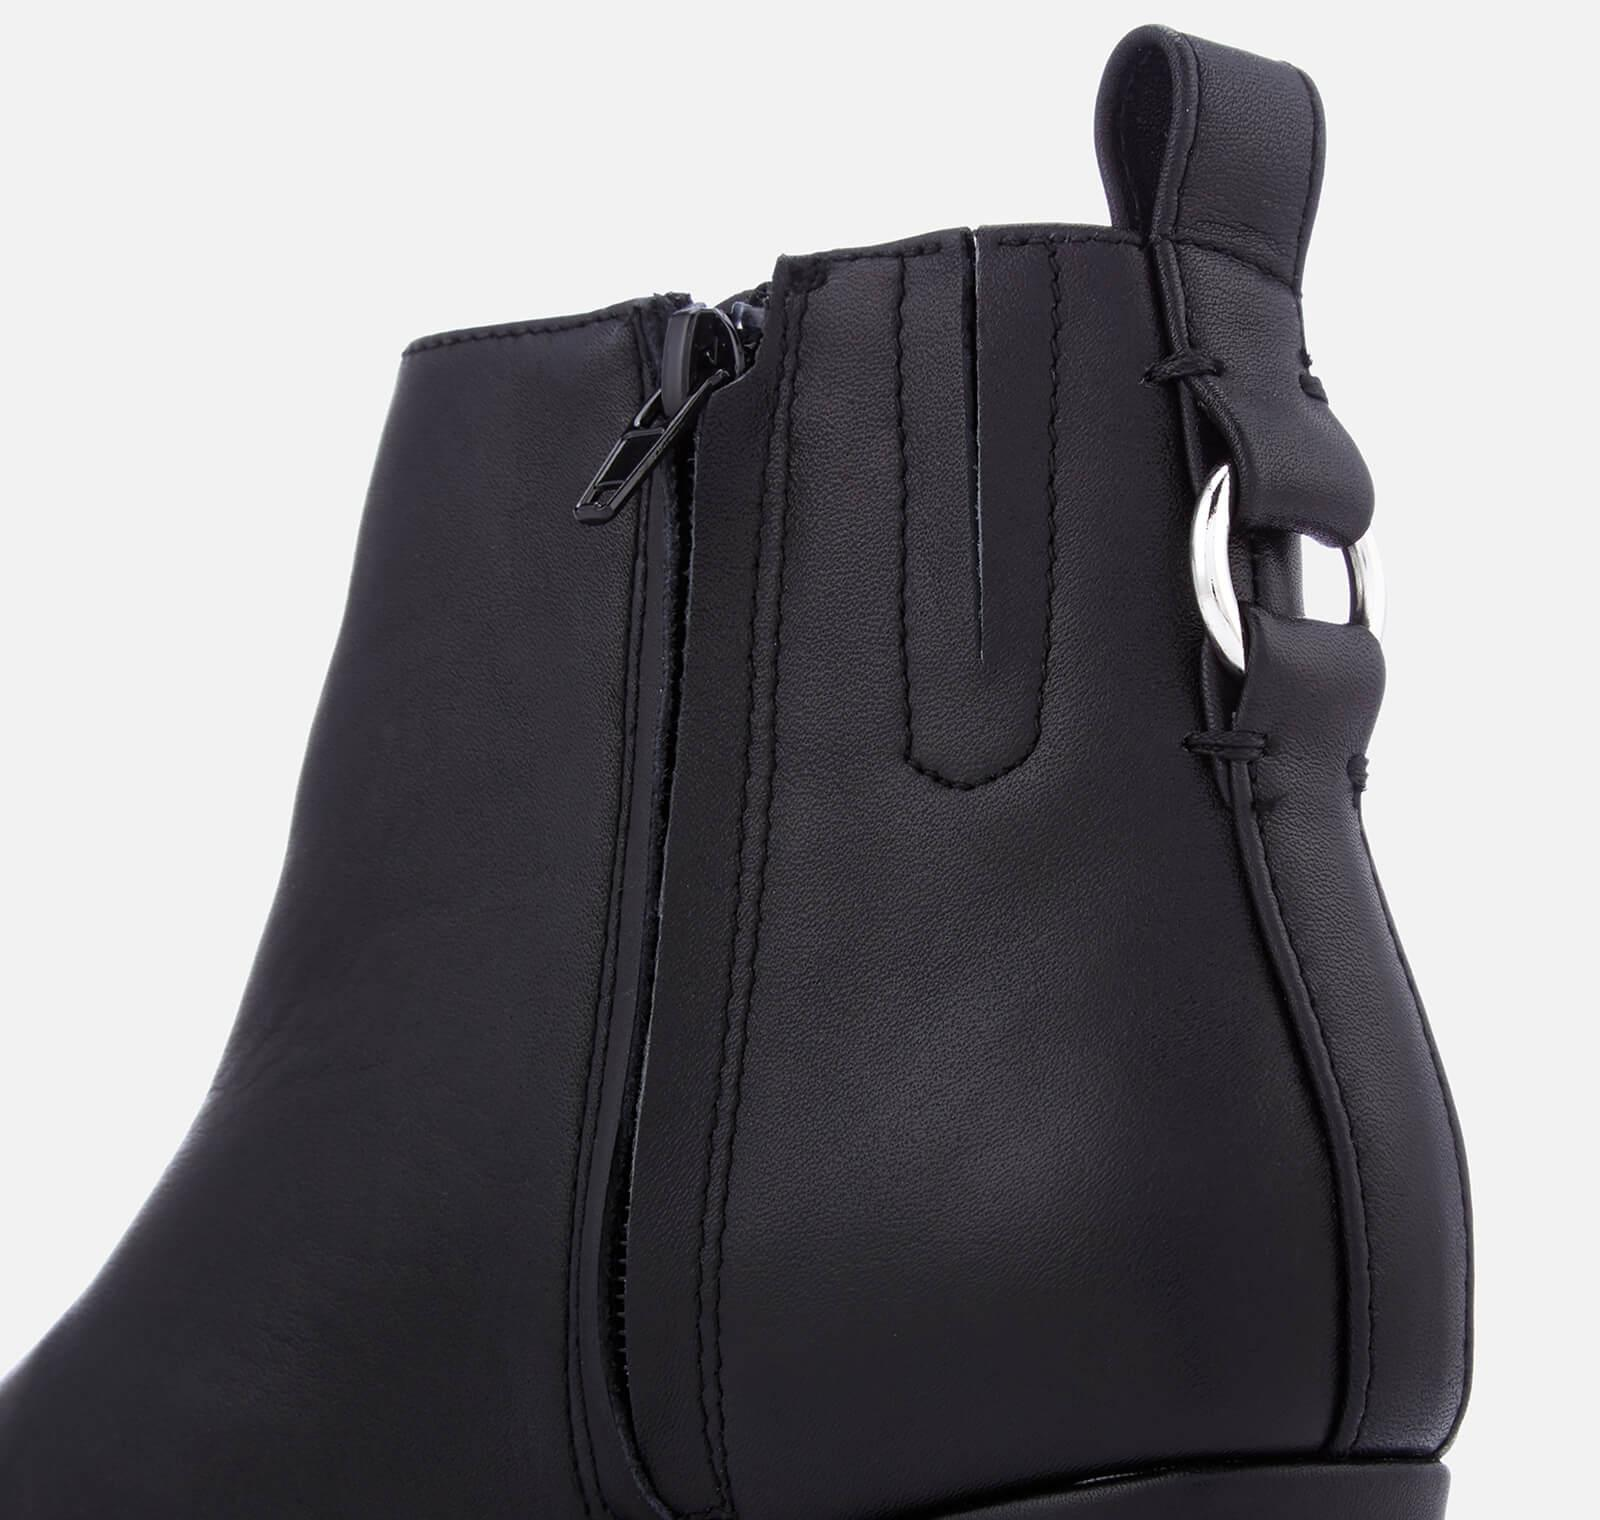 bc78c495019 Steve Madden Black Clover Leather Heeled Ankle Boots